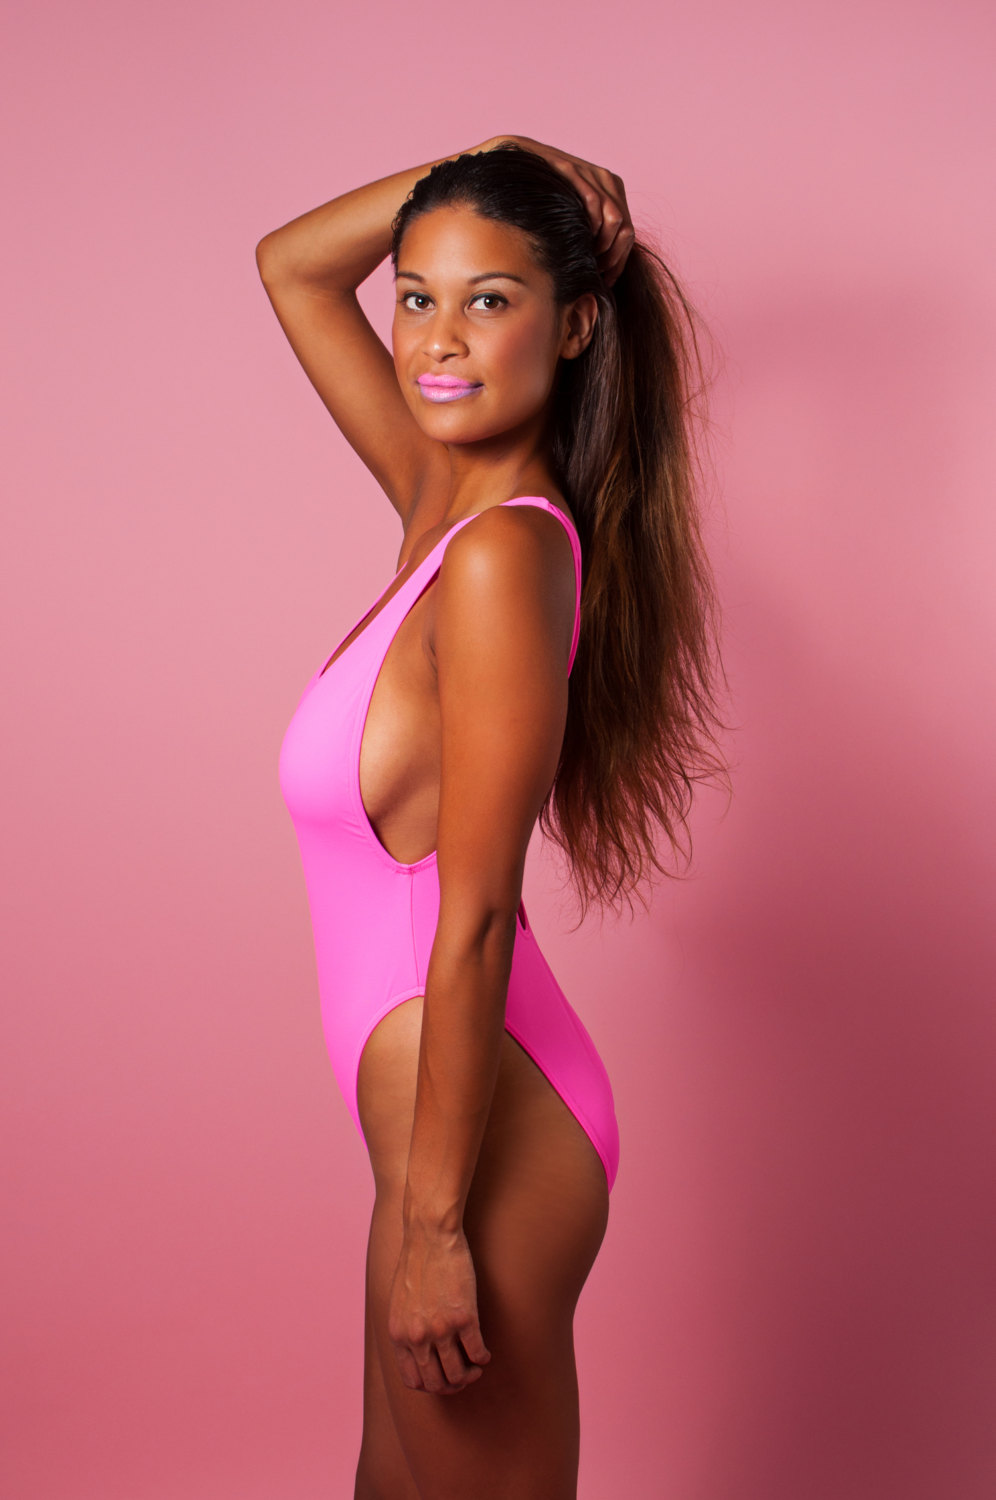 80's inspired high cut swimwear ∆ new ∆ neon pink 80's swimsuit ∆ 90s one